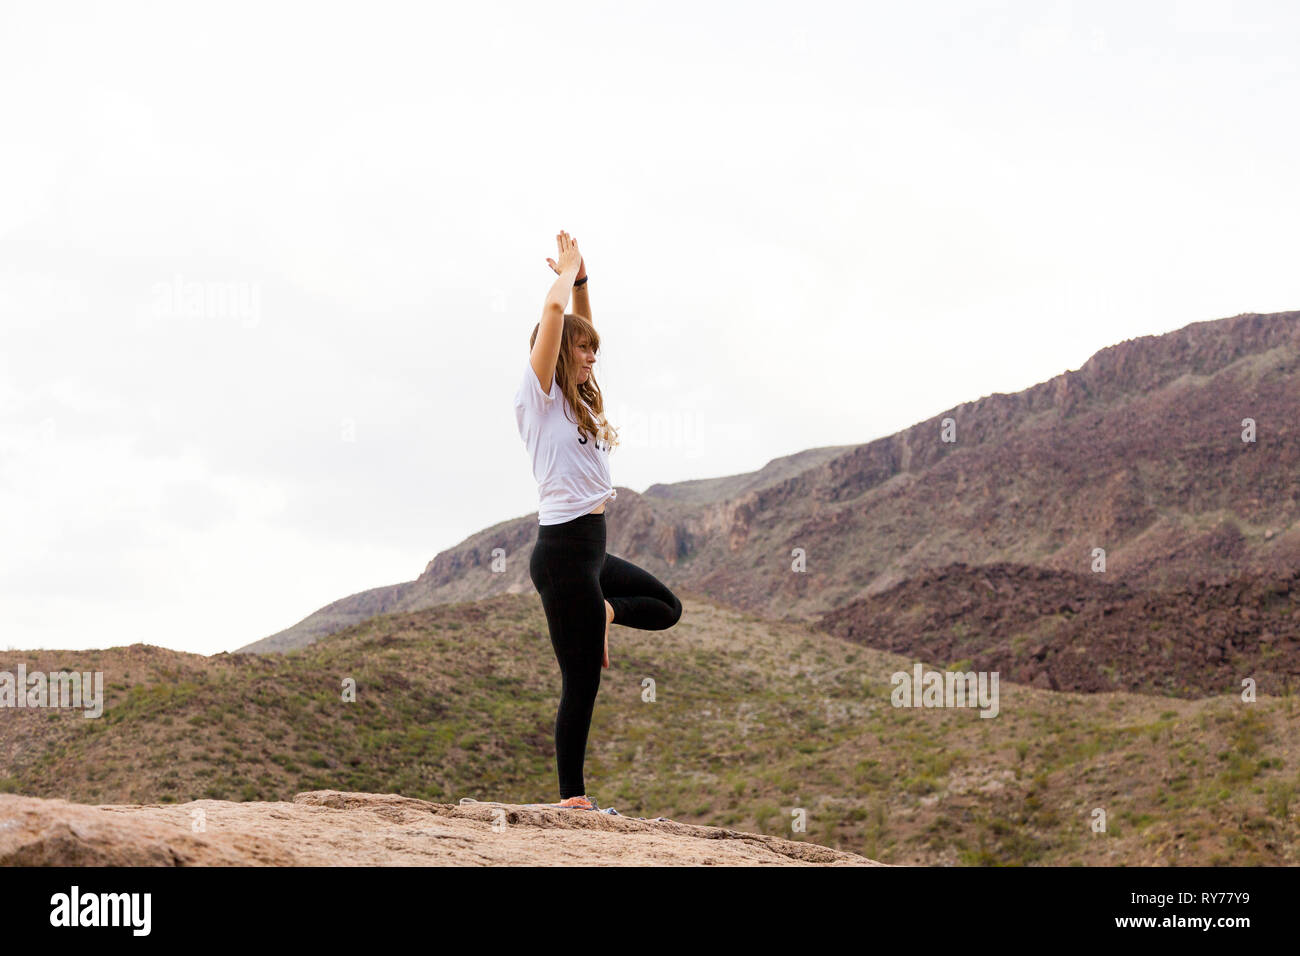 A young woman practices yoga in Big Bend National Park. - Stock Image